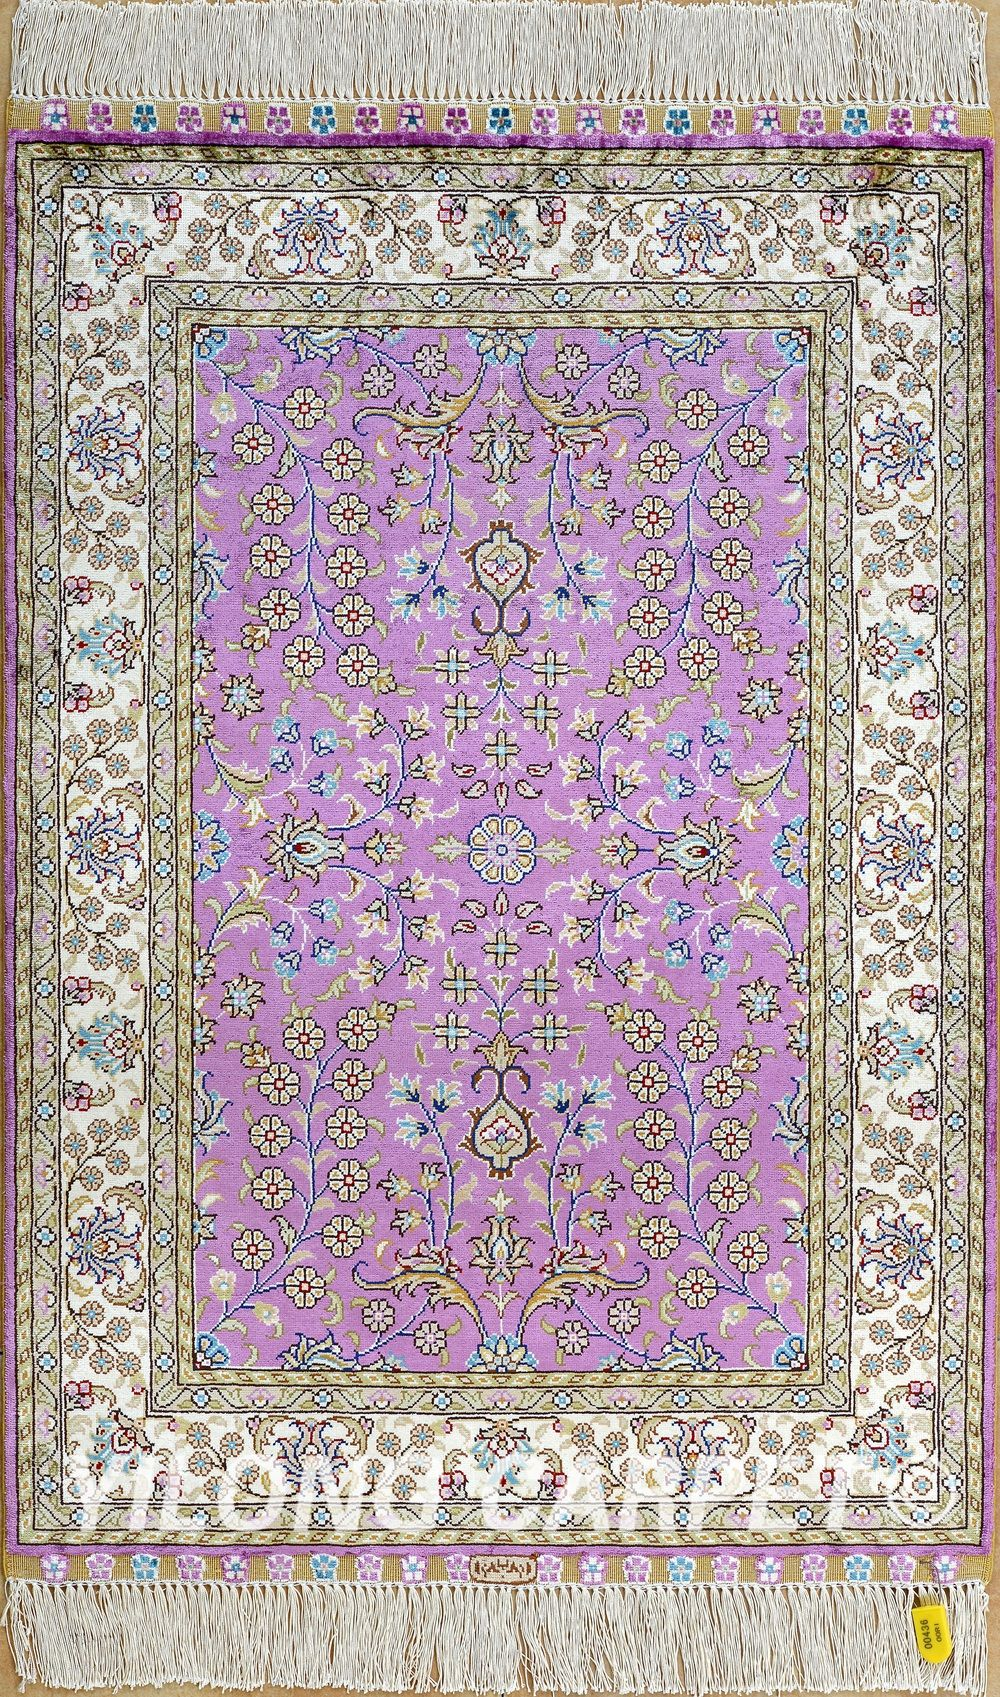 Persian Carpet Rug Pink Beige Blue Yellow Color Companies Material Prayer Dining Area